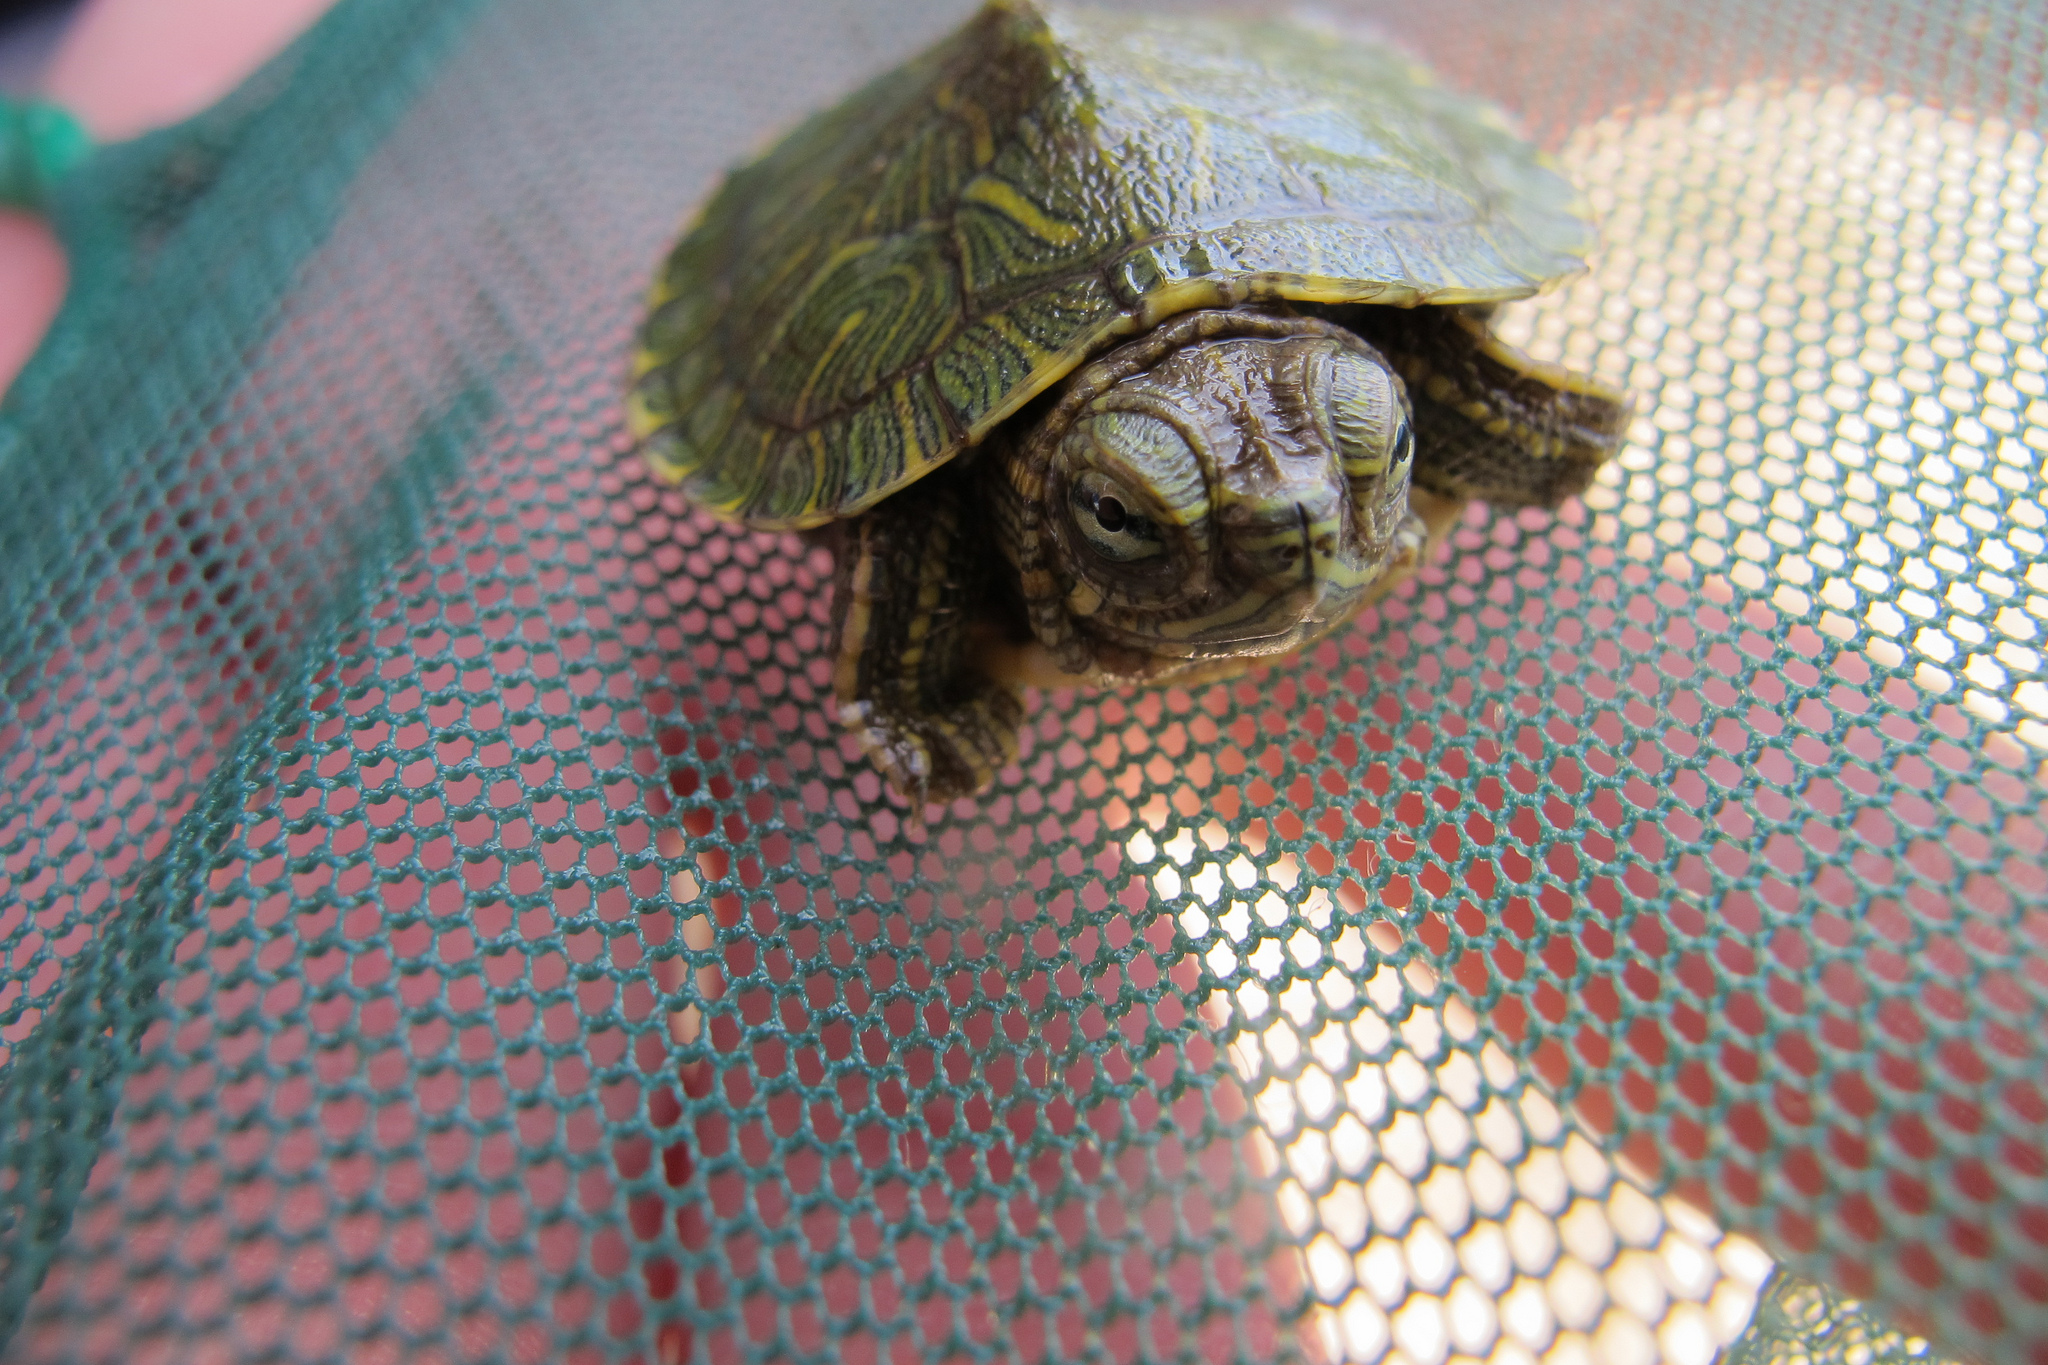 Little red-eared slider on a net